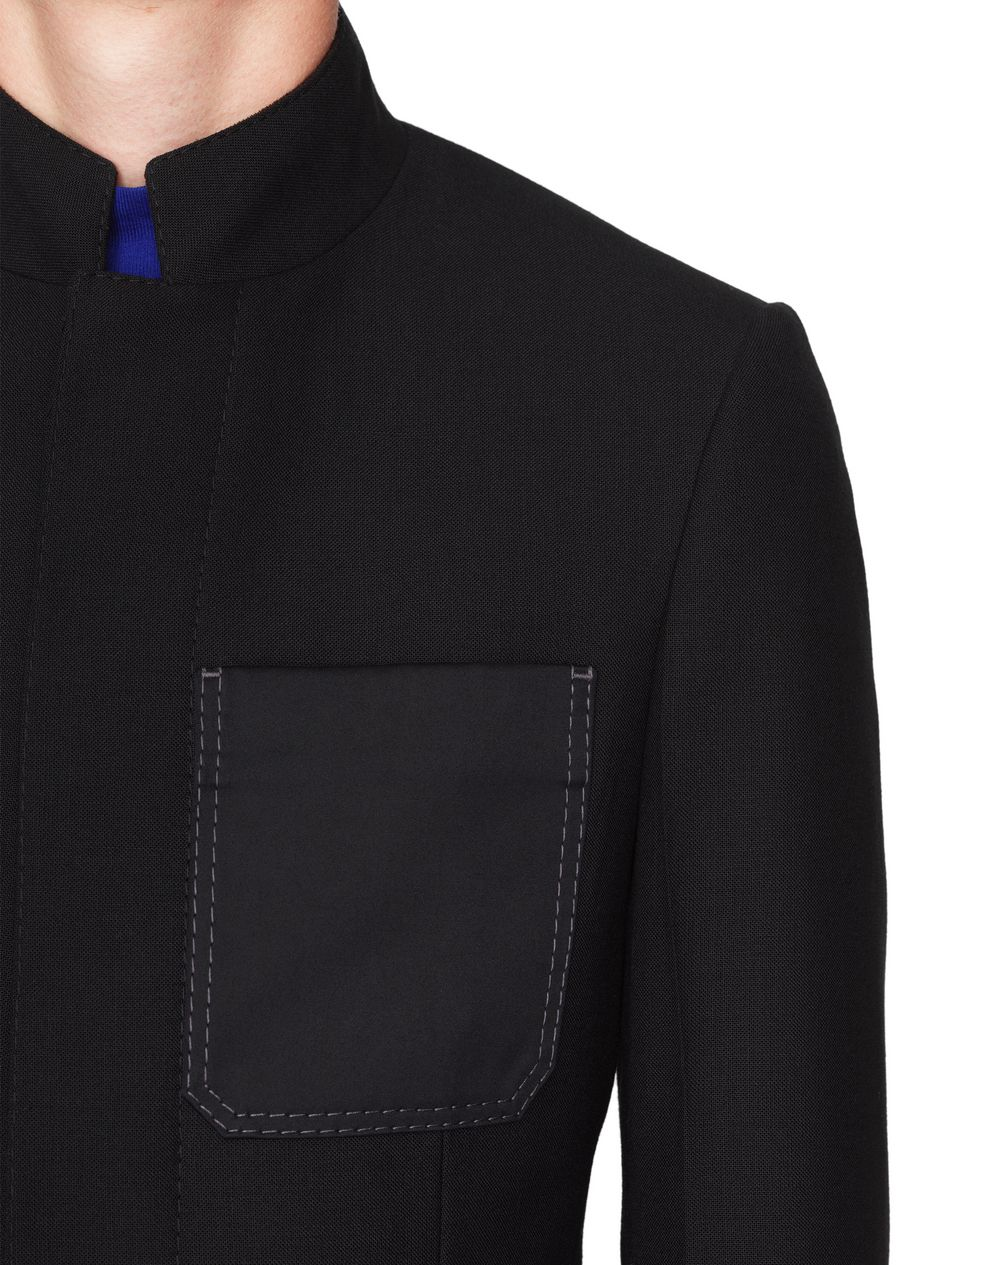 BLACK MILITARY TAILORING JACKET    - Lanvin